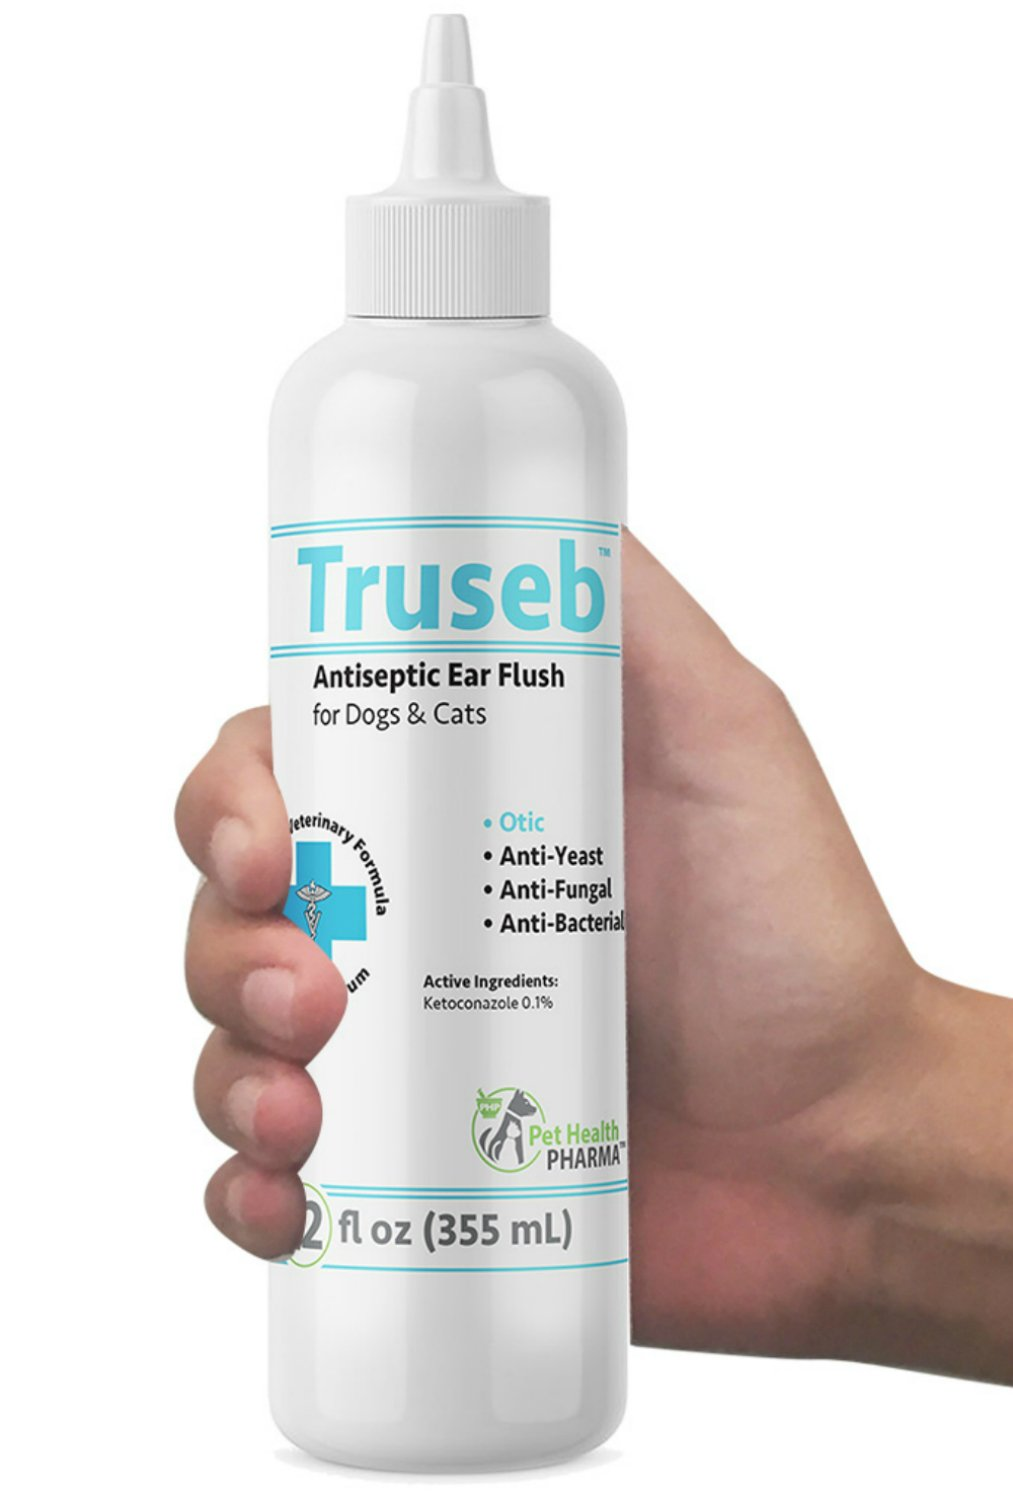 Truseb   #1 Dog and Cat Ear Infection Treatment – Ear Cleaner Flush Solves Itching, Head Shaking, Discharge & Smelly Ears Due to Mites, Yeast & Bacteria- KETOCONAZOL 0.1% - Antibacterial, Antiseptic,